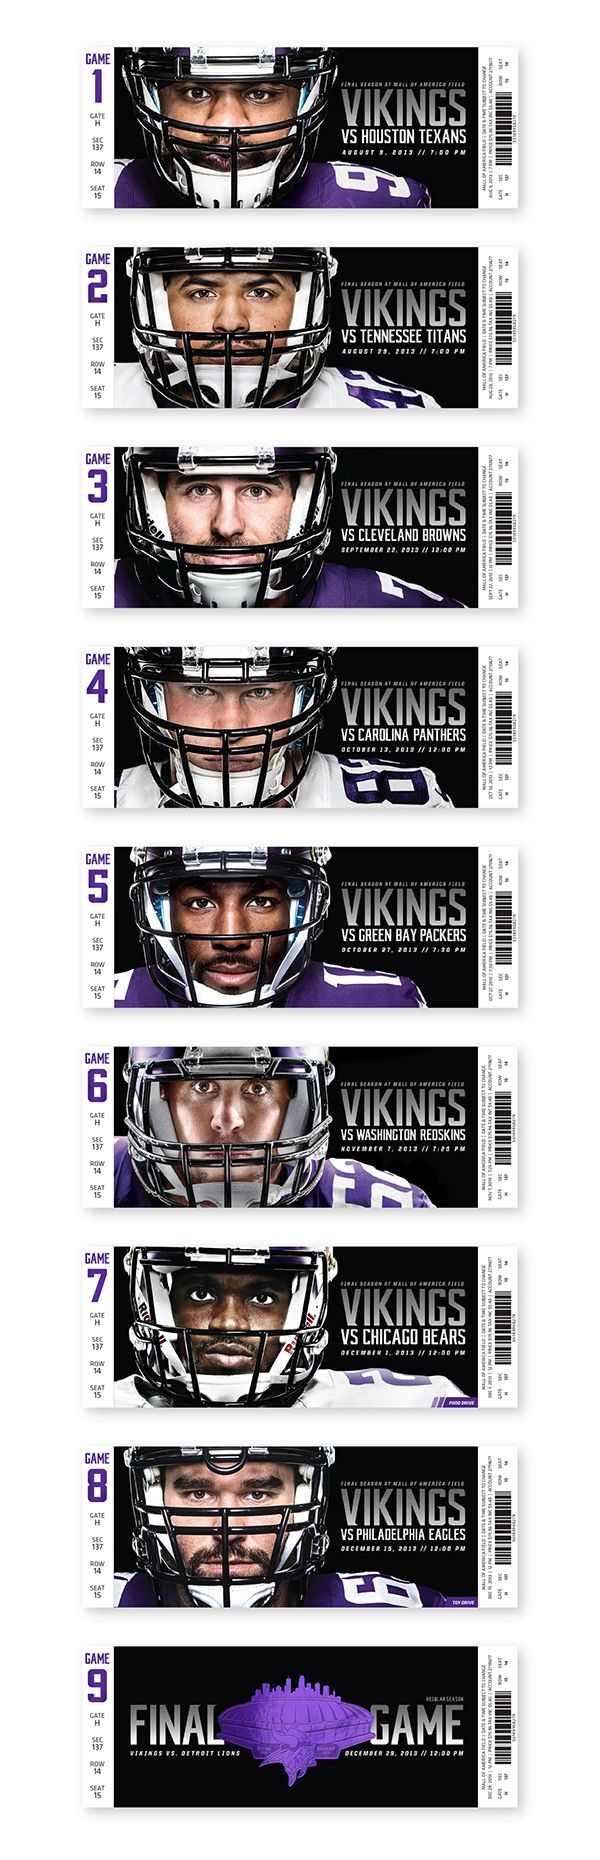 2013 Minnesota Vikings Season Tickets | Celebrating the Final Season at Mall of America Field